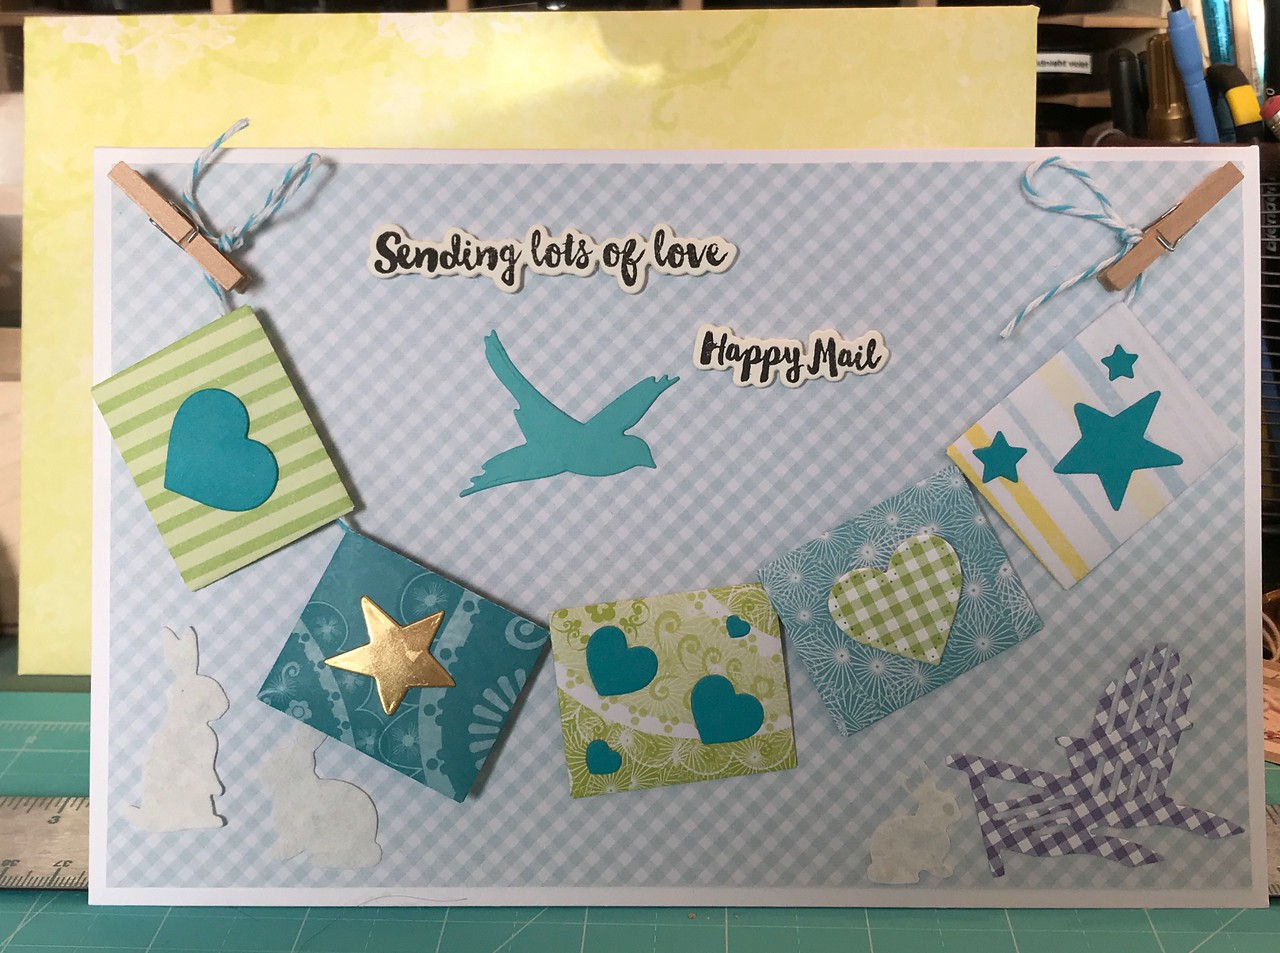 Another card for Teddy, who loves mail!